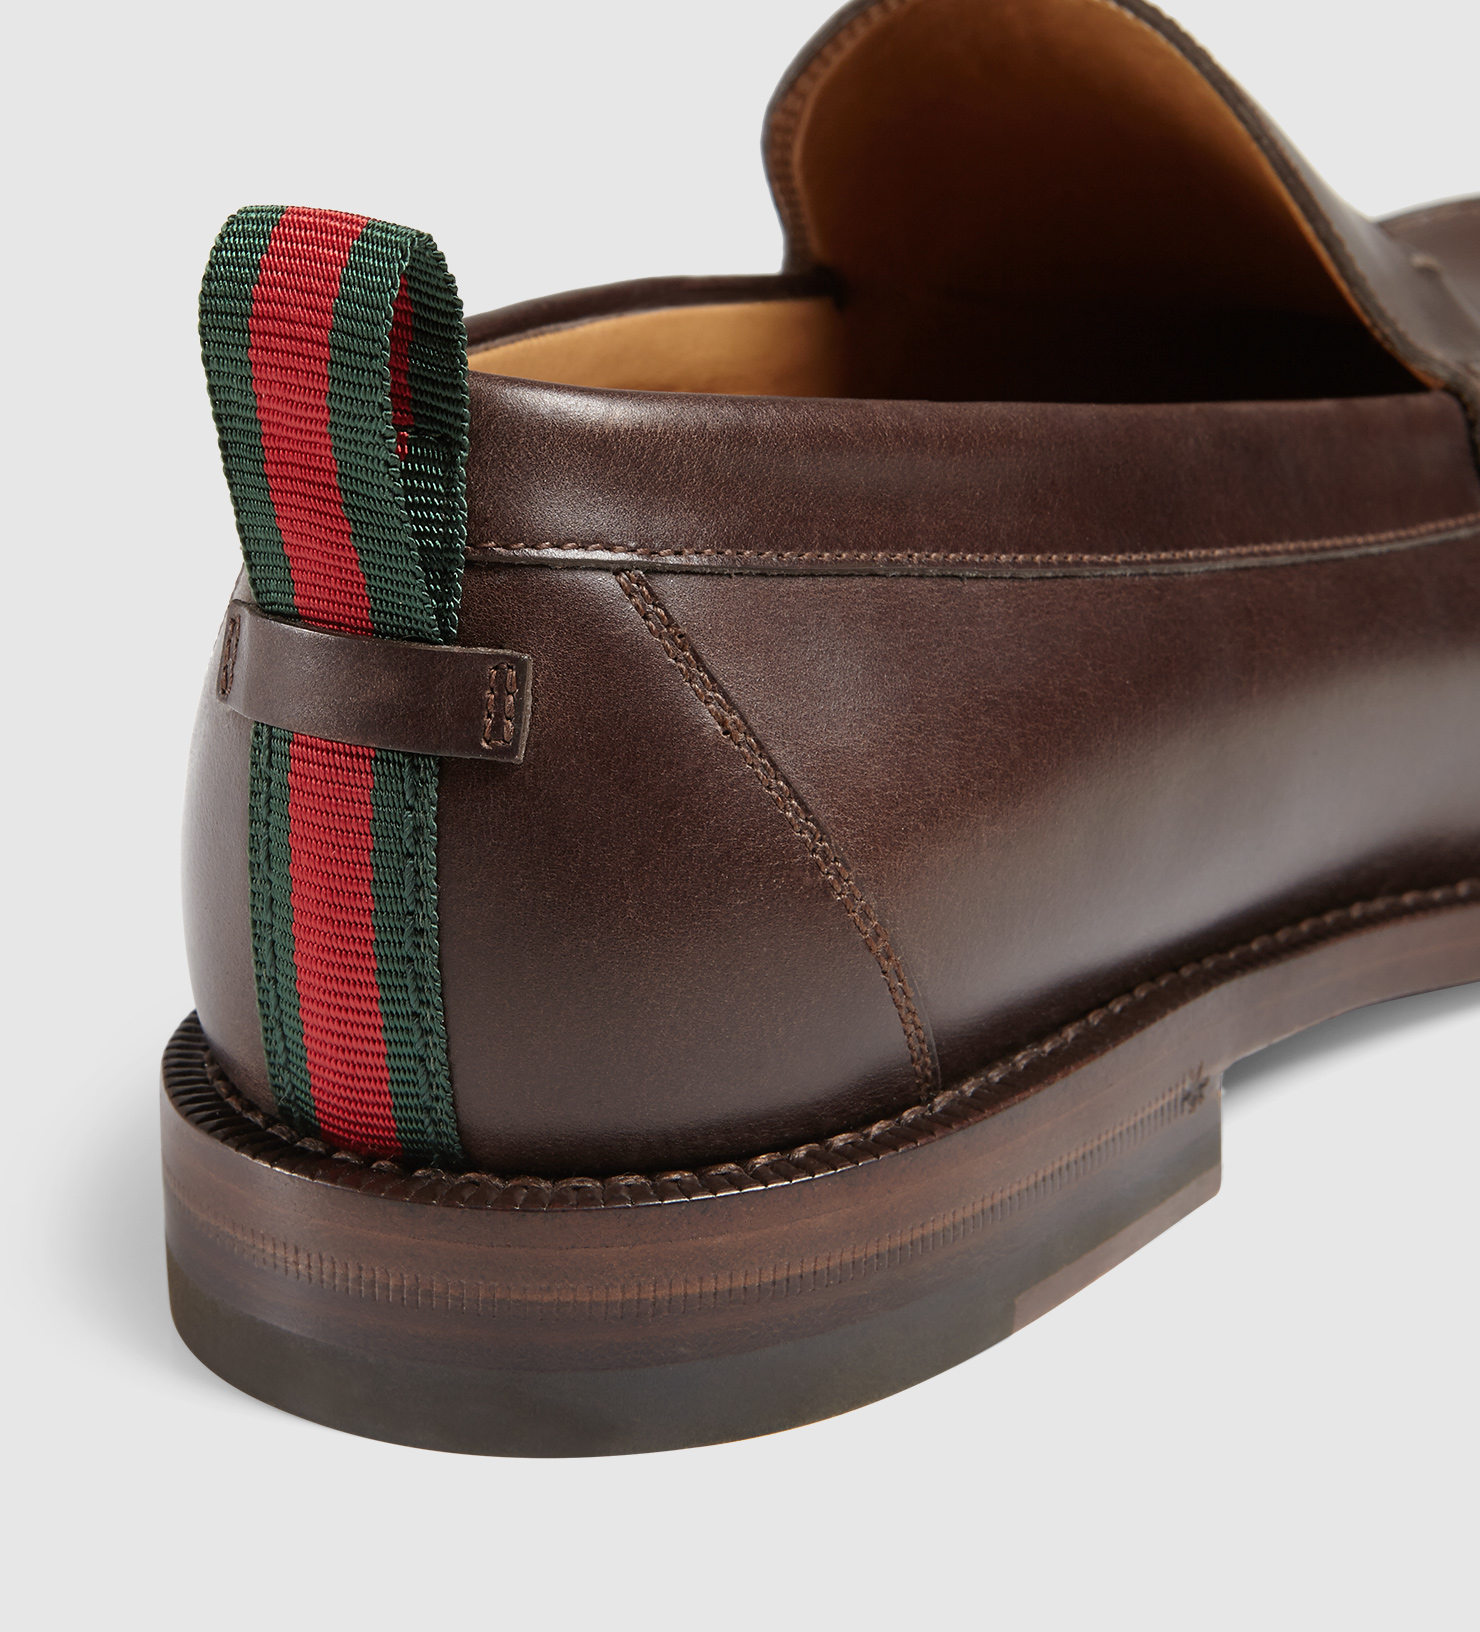 fe8a1375084 Gucci Leather Loafer in Brown for Men - Lyst